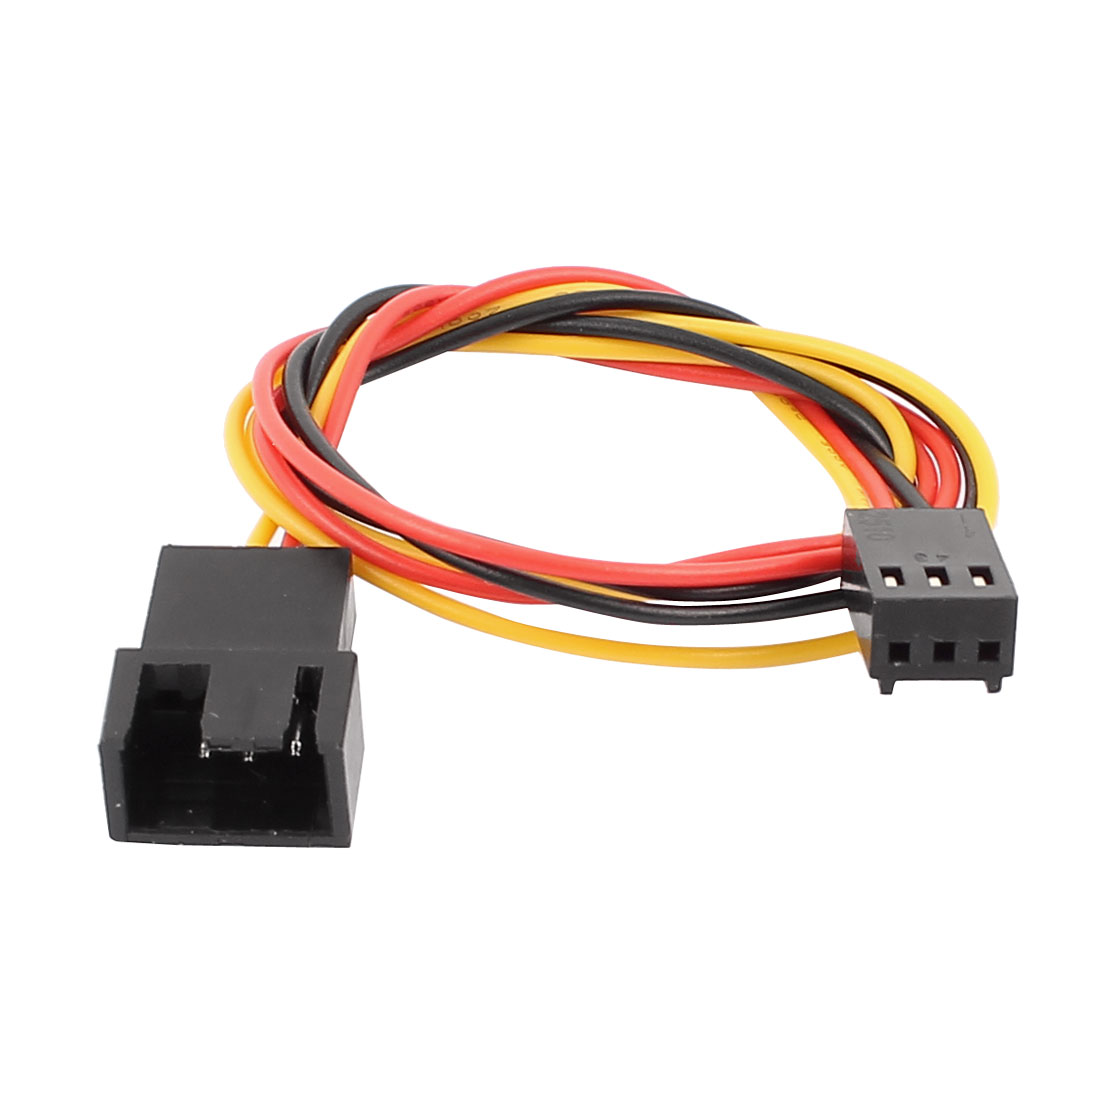 Black Red 33cm Length JST SM 3P Jack Male to Female Wire Connector